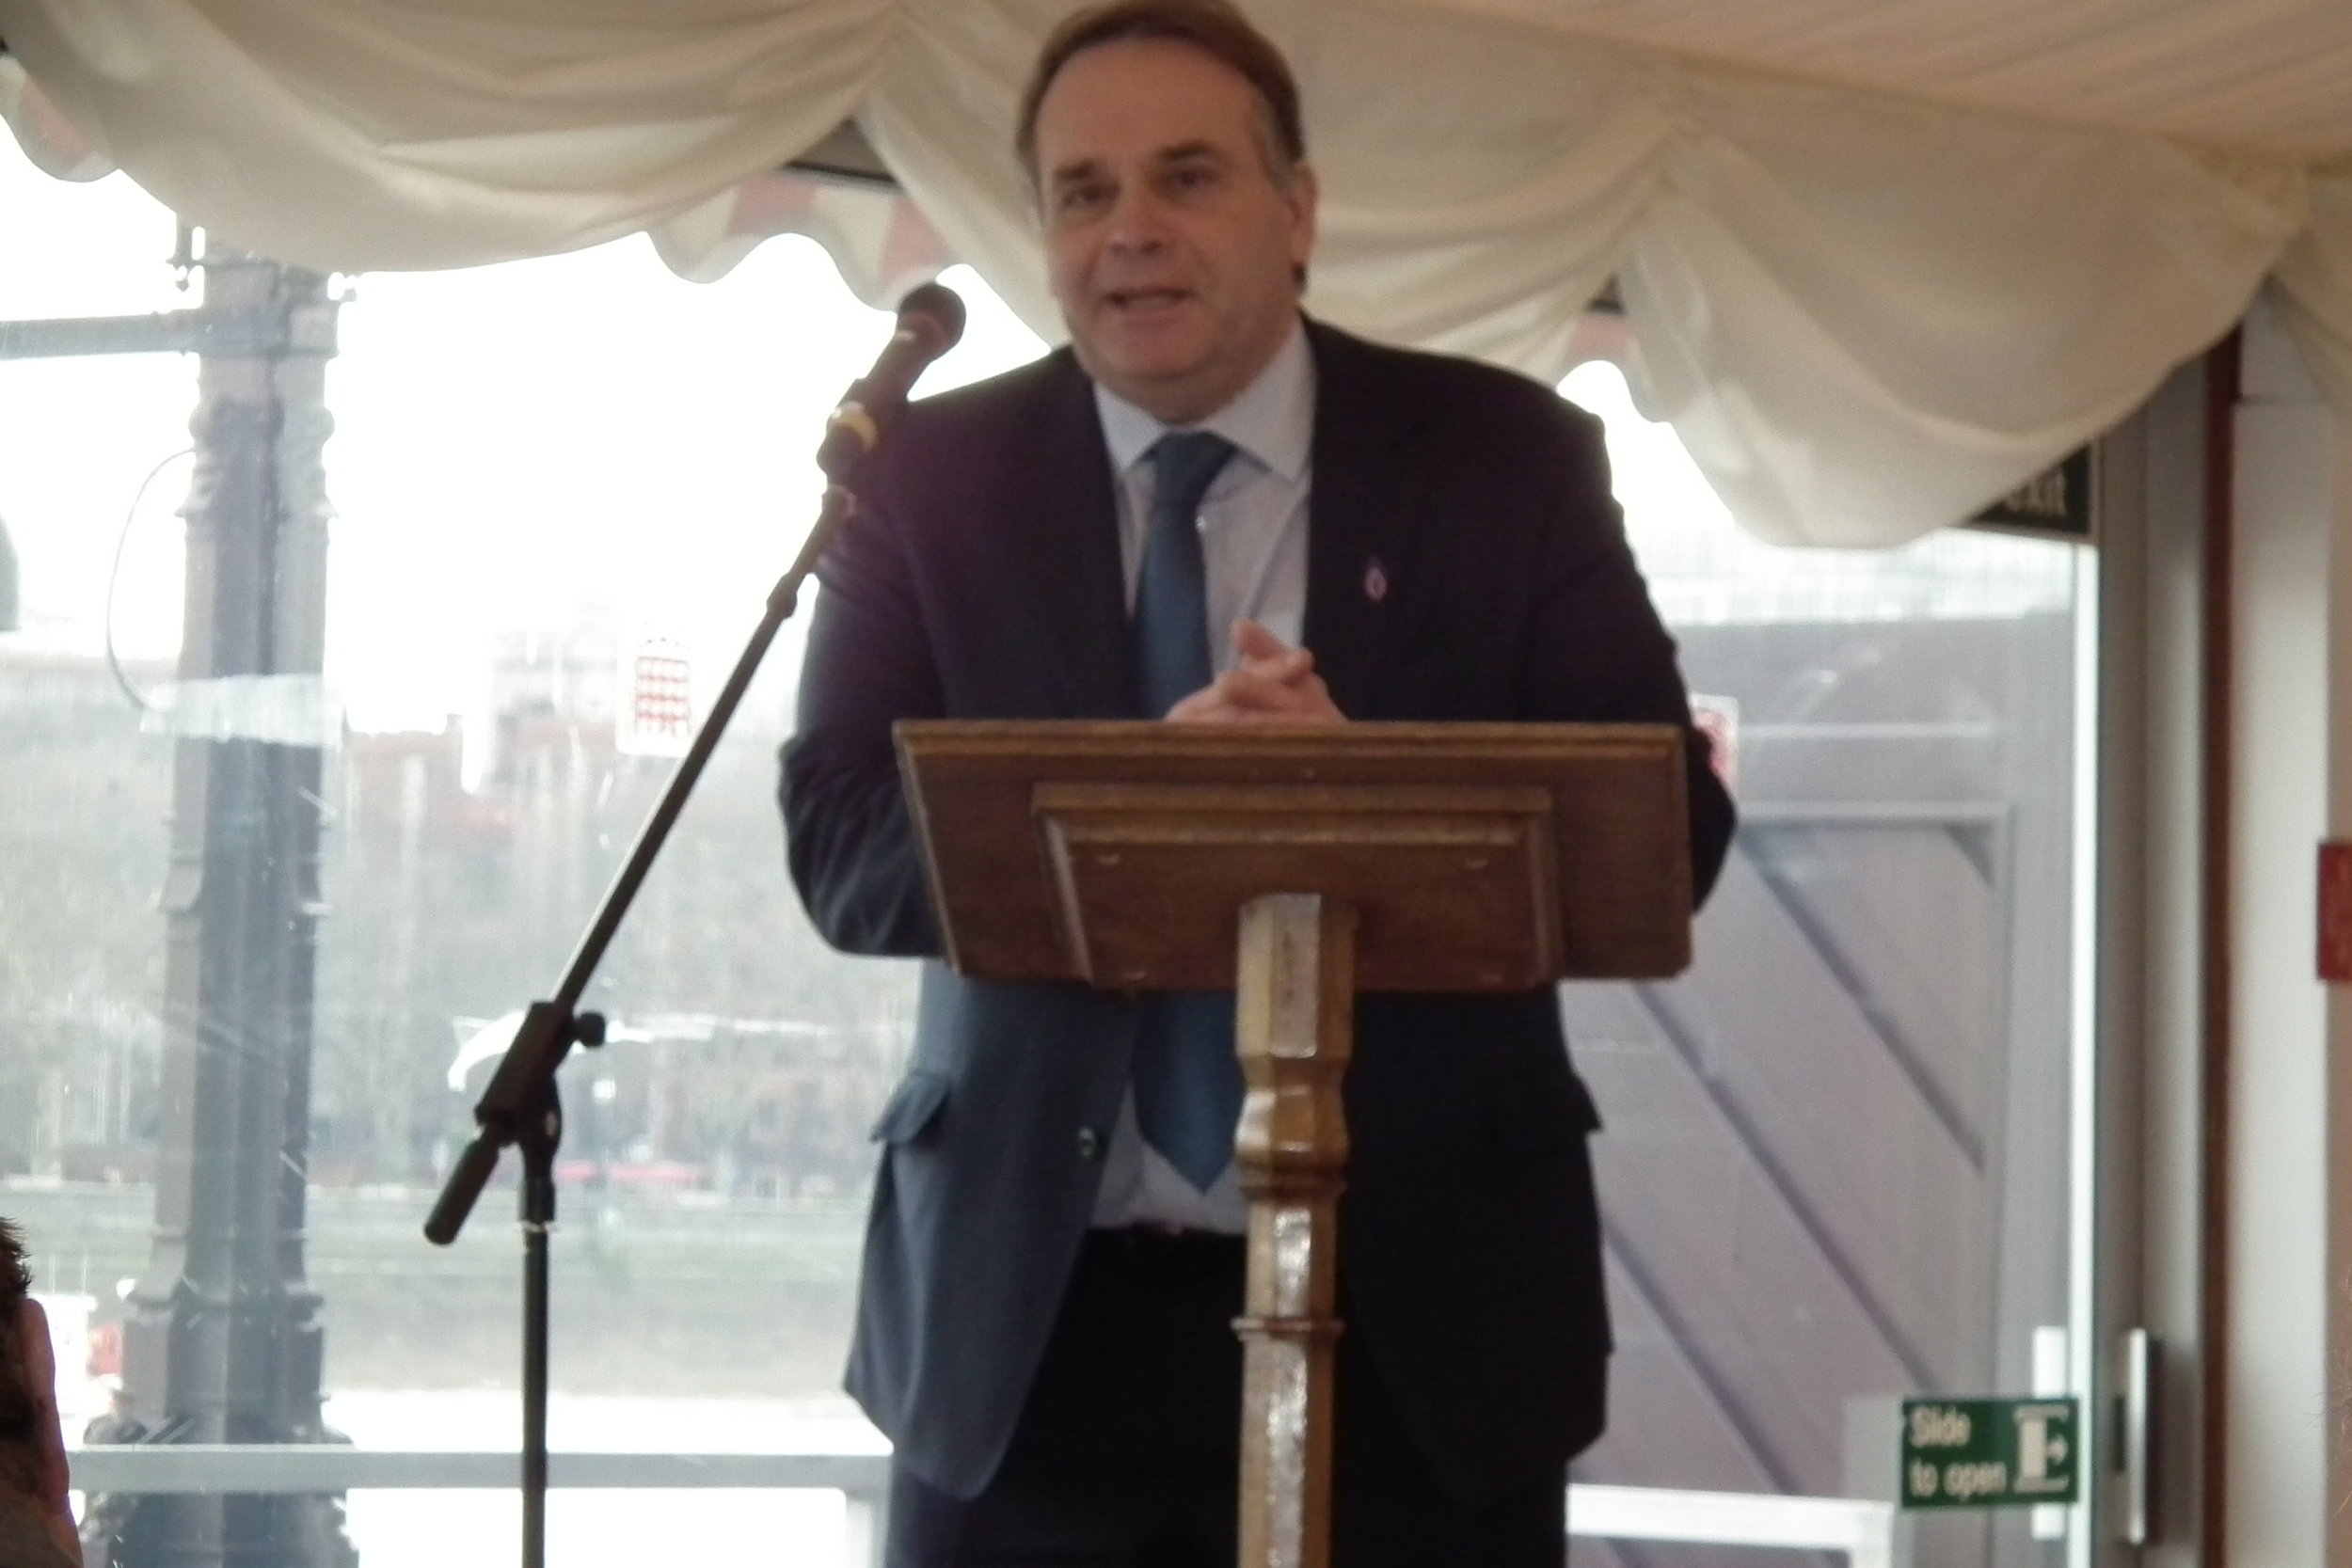 Rt Hon Neil Parish MP